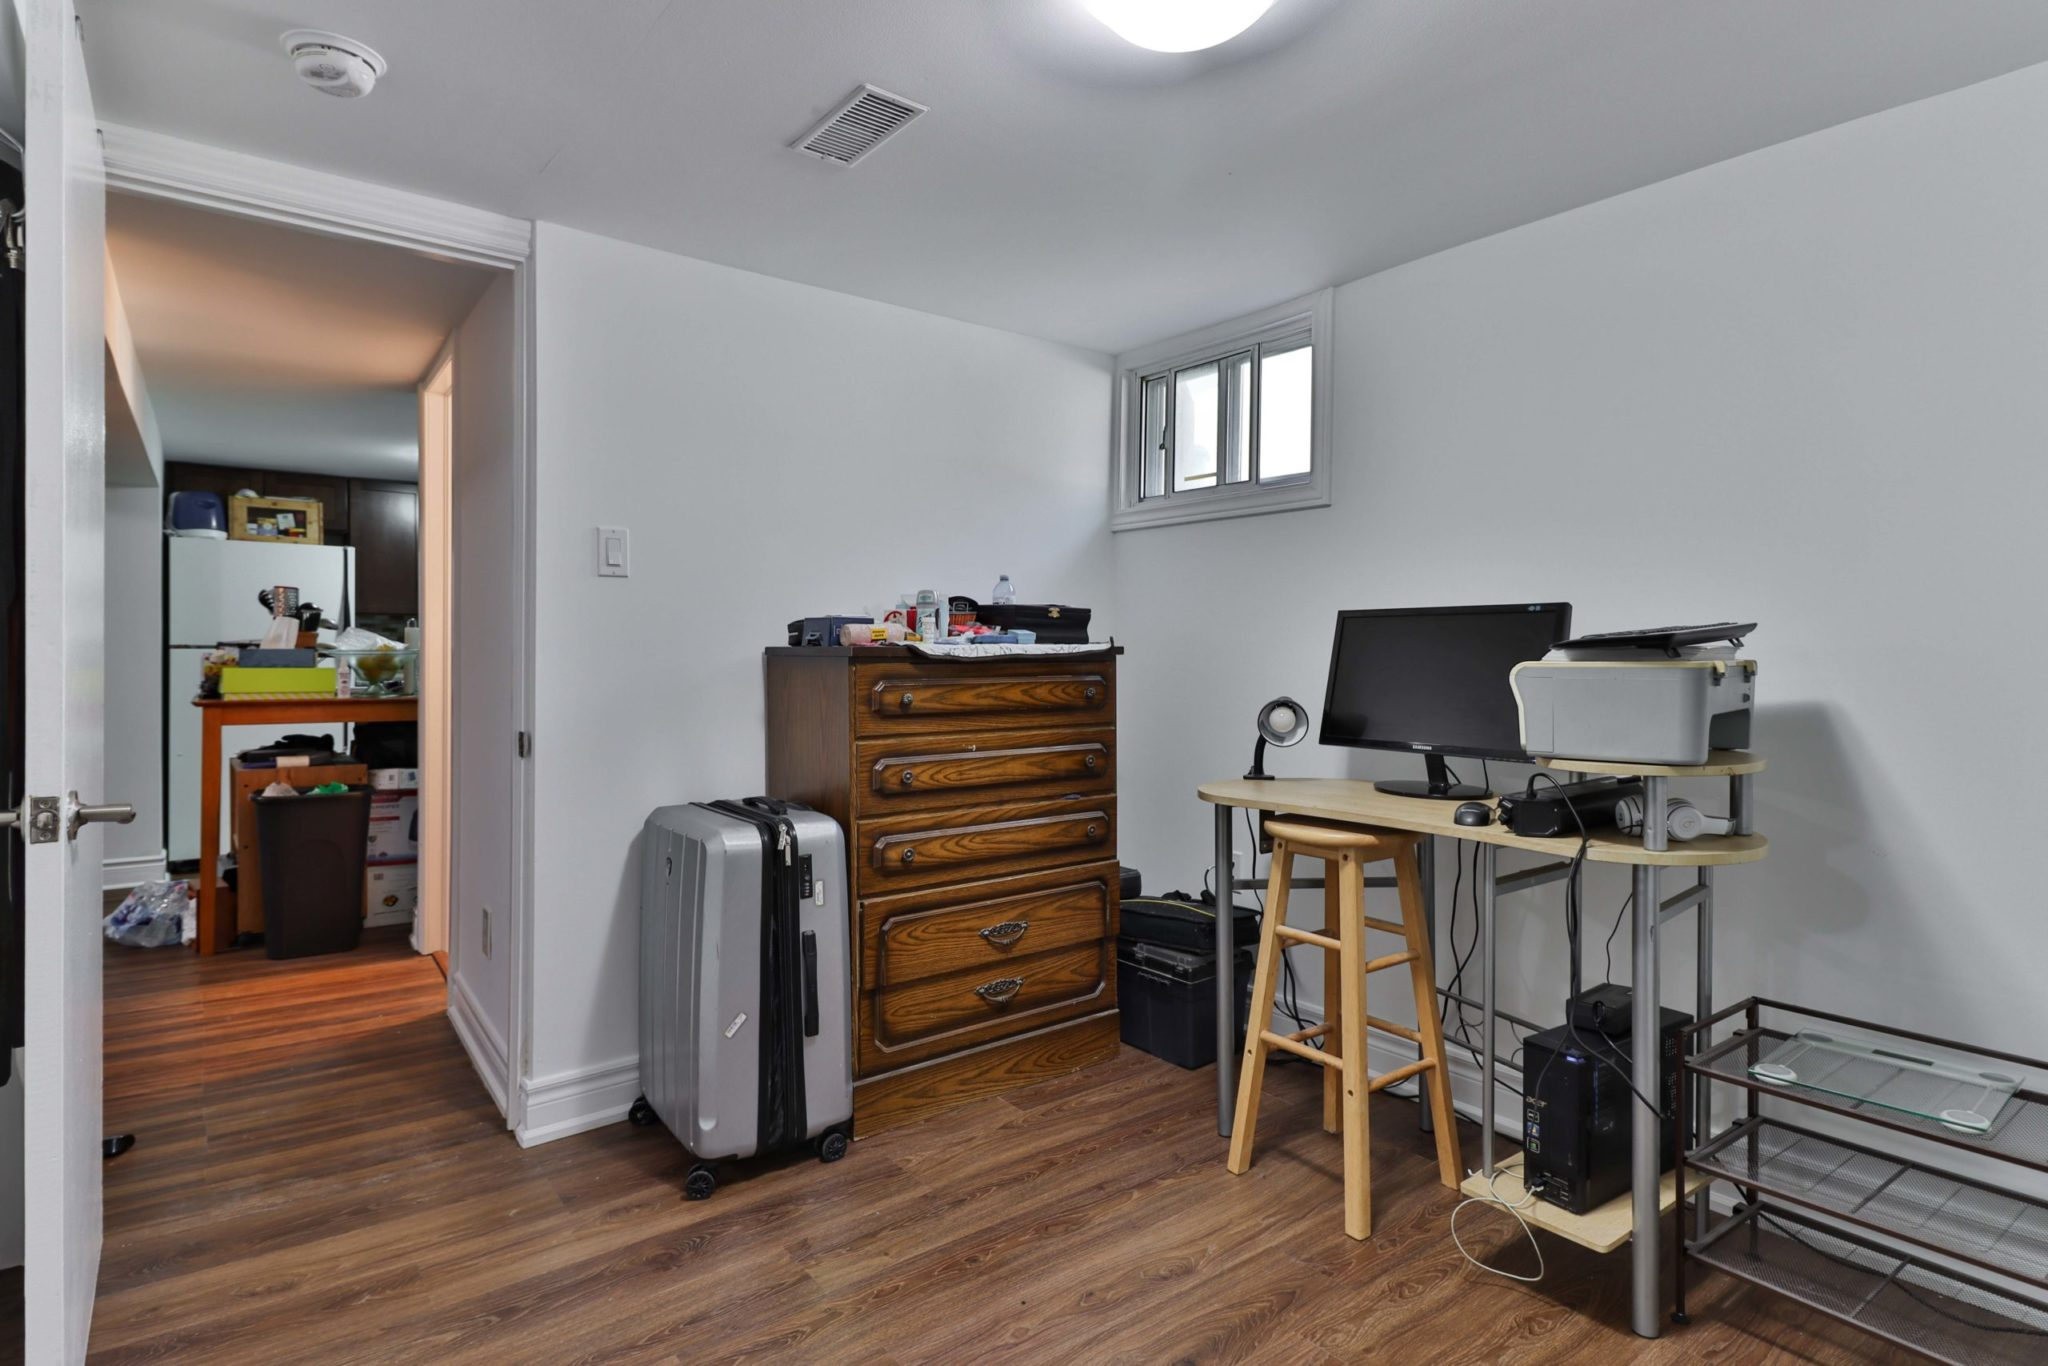 Basement office with computer, desk, large dresser, luggage and laminate floors.